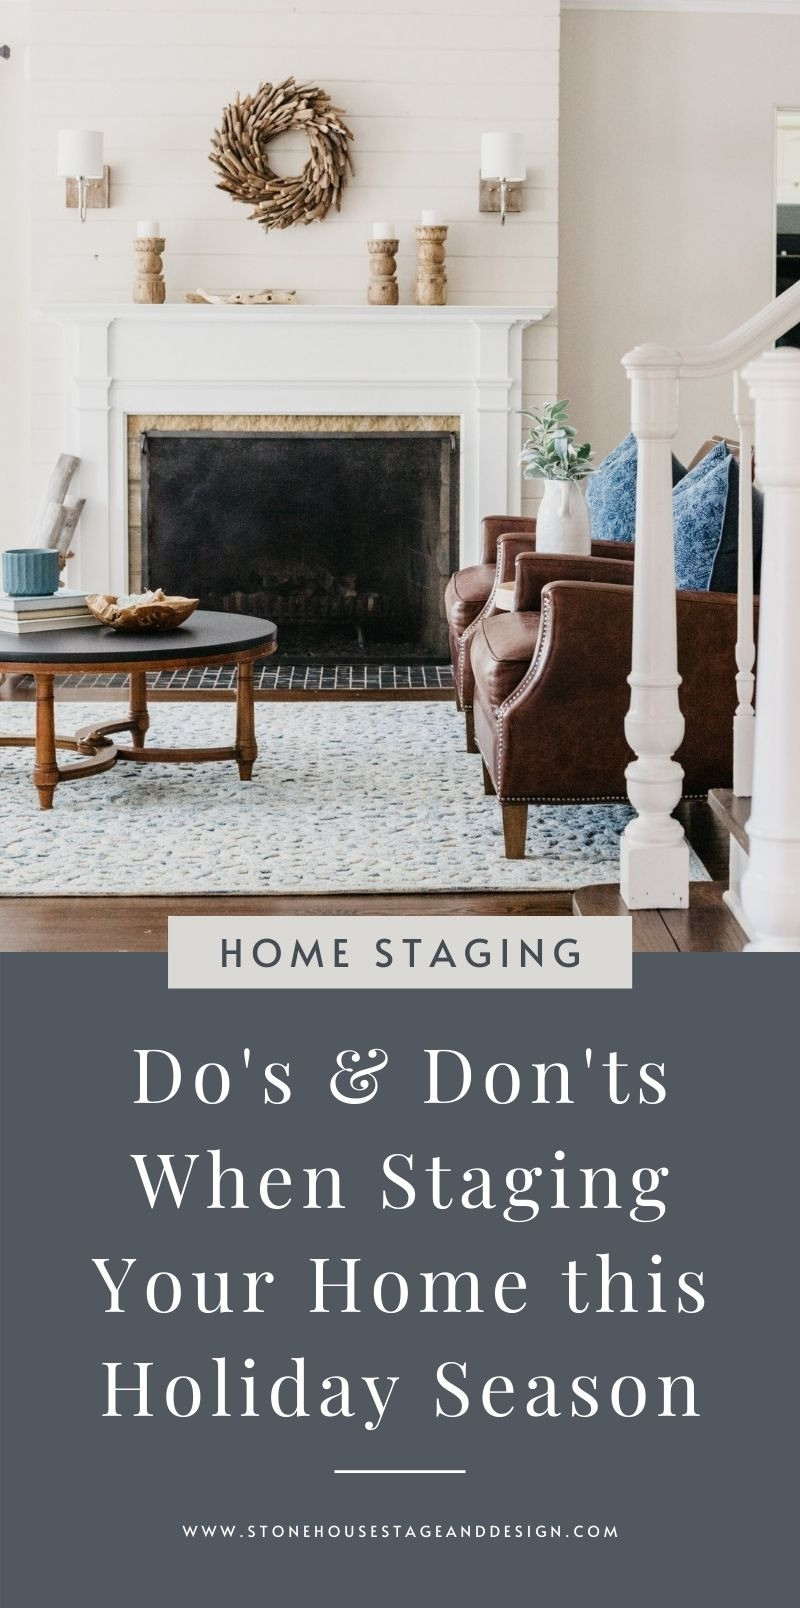 Do's & Don'ts When Staging Your Home this Holiday Season